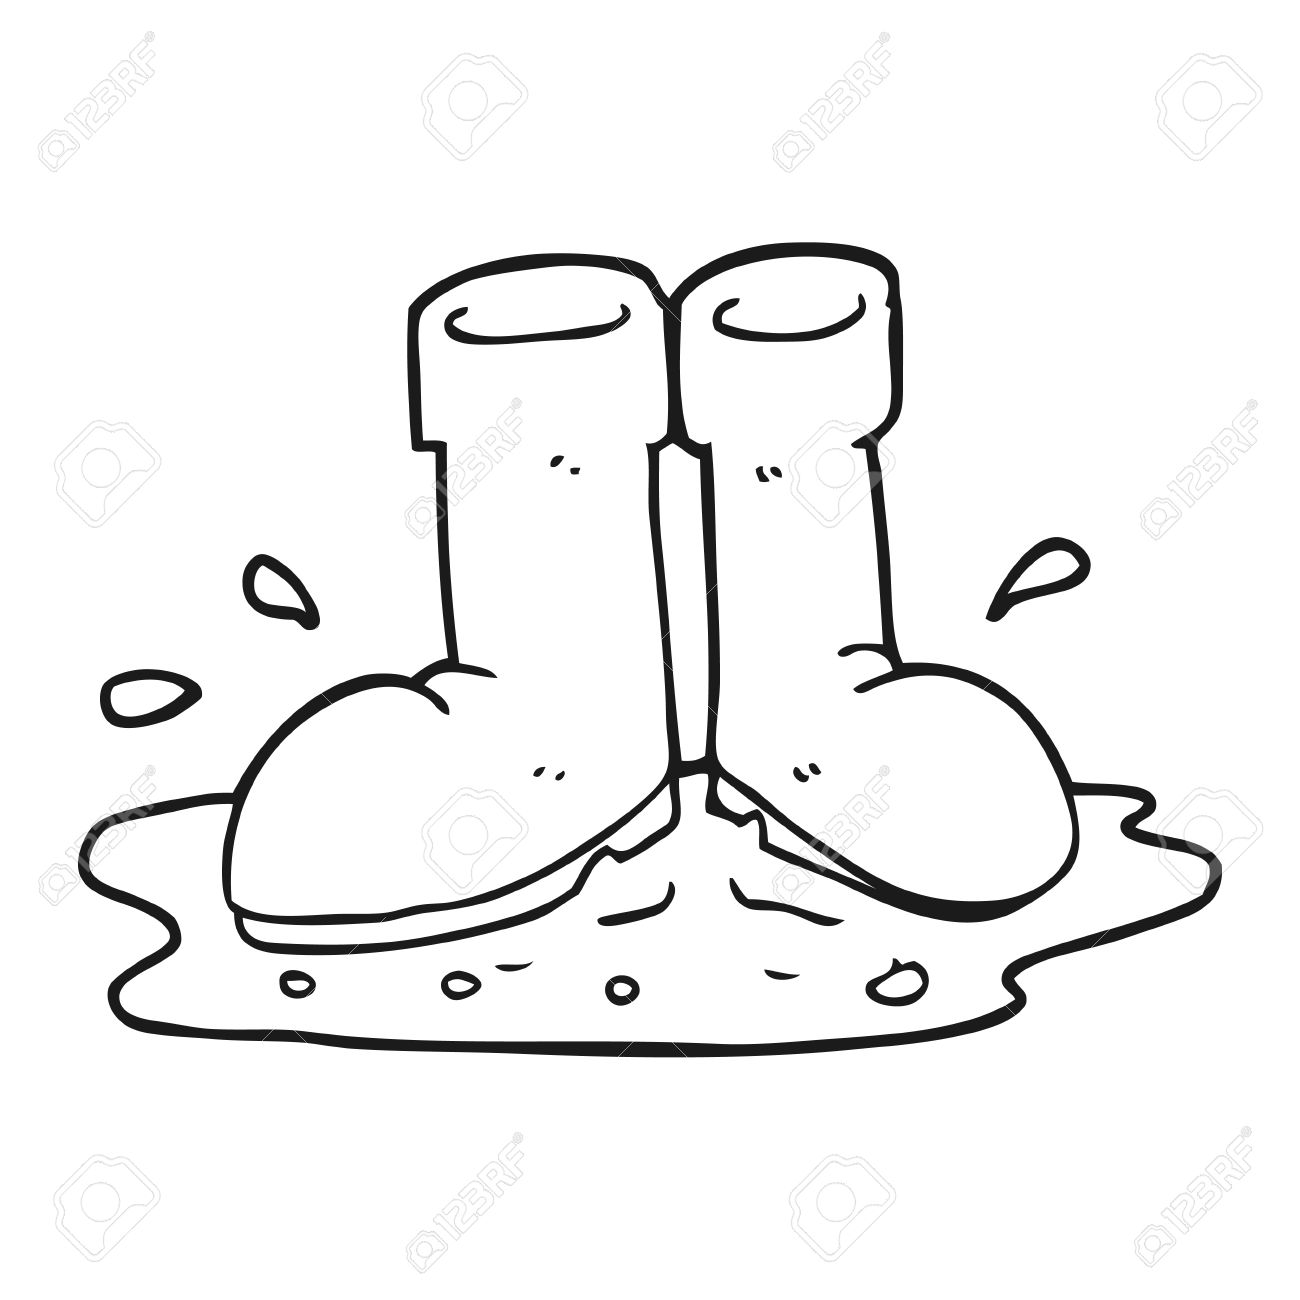 Freehand Drawn Black And White Cartoon Wellington Boots In Puddle.